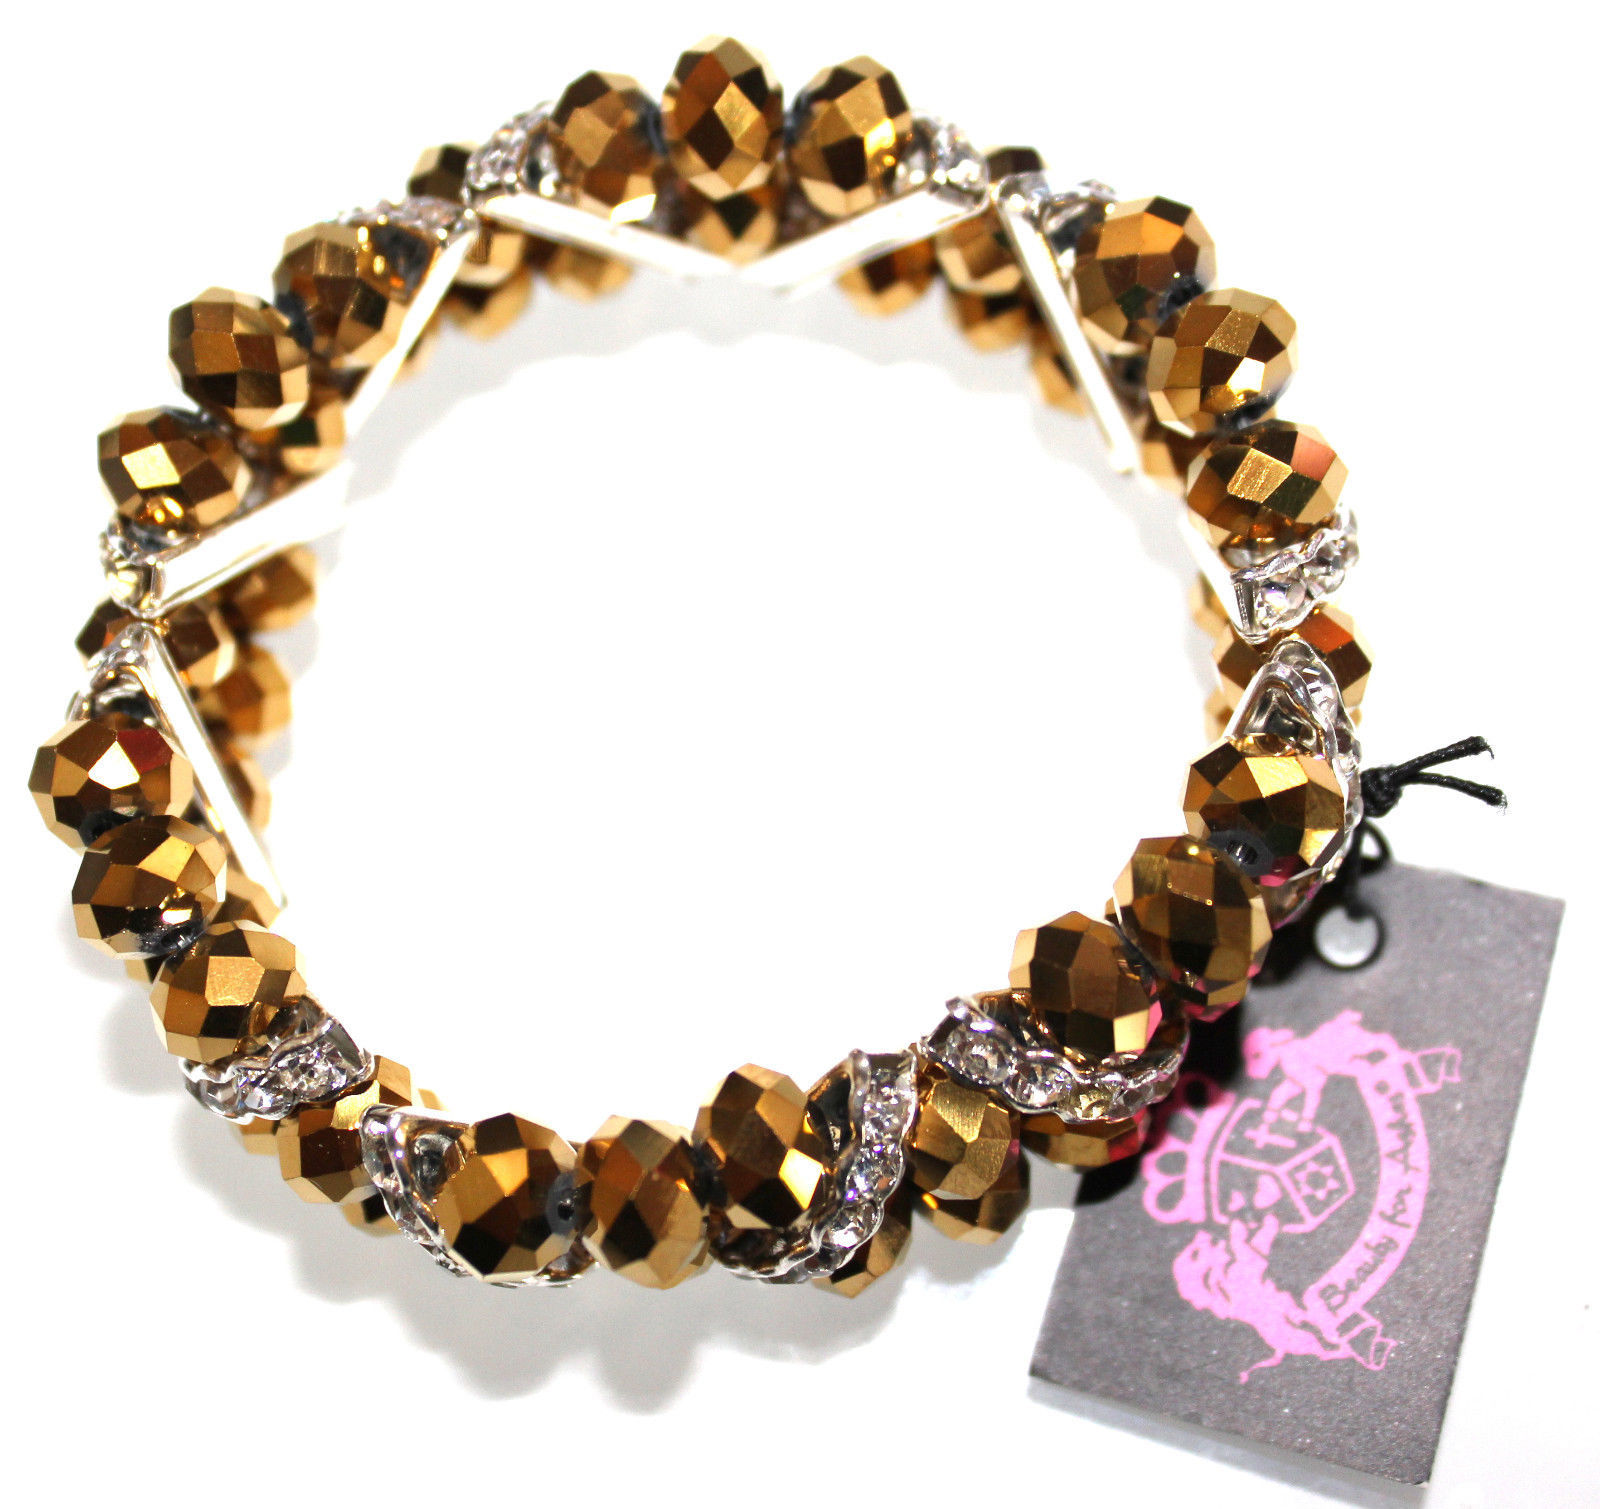 Glimmering Sparkly Dressy Bronze Facted Crystal Gold Silver Stretch Bracelet